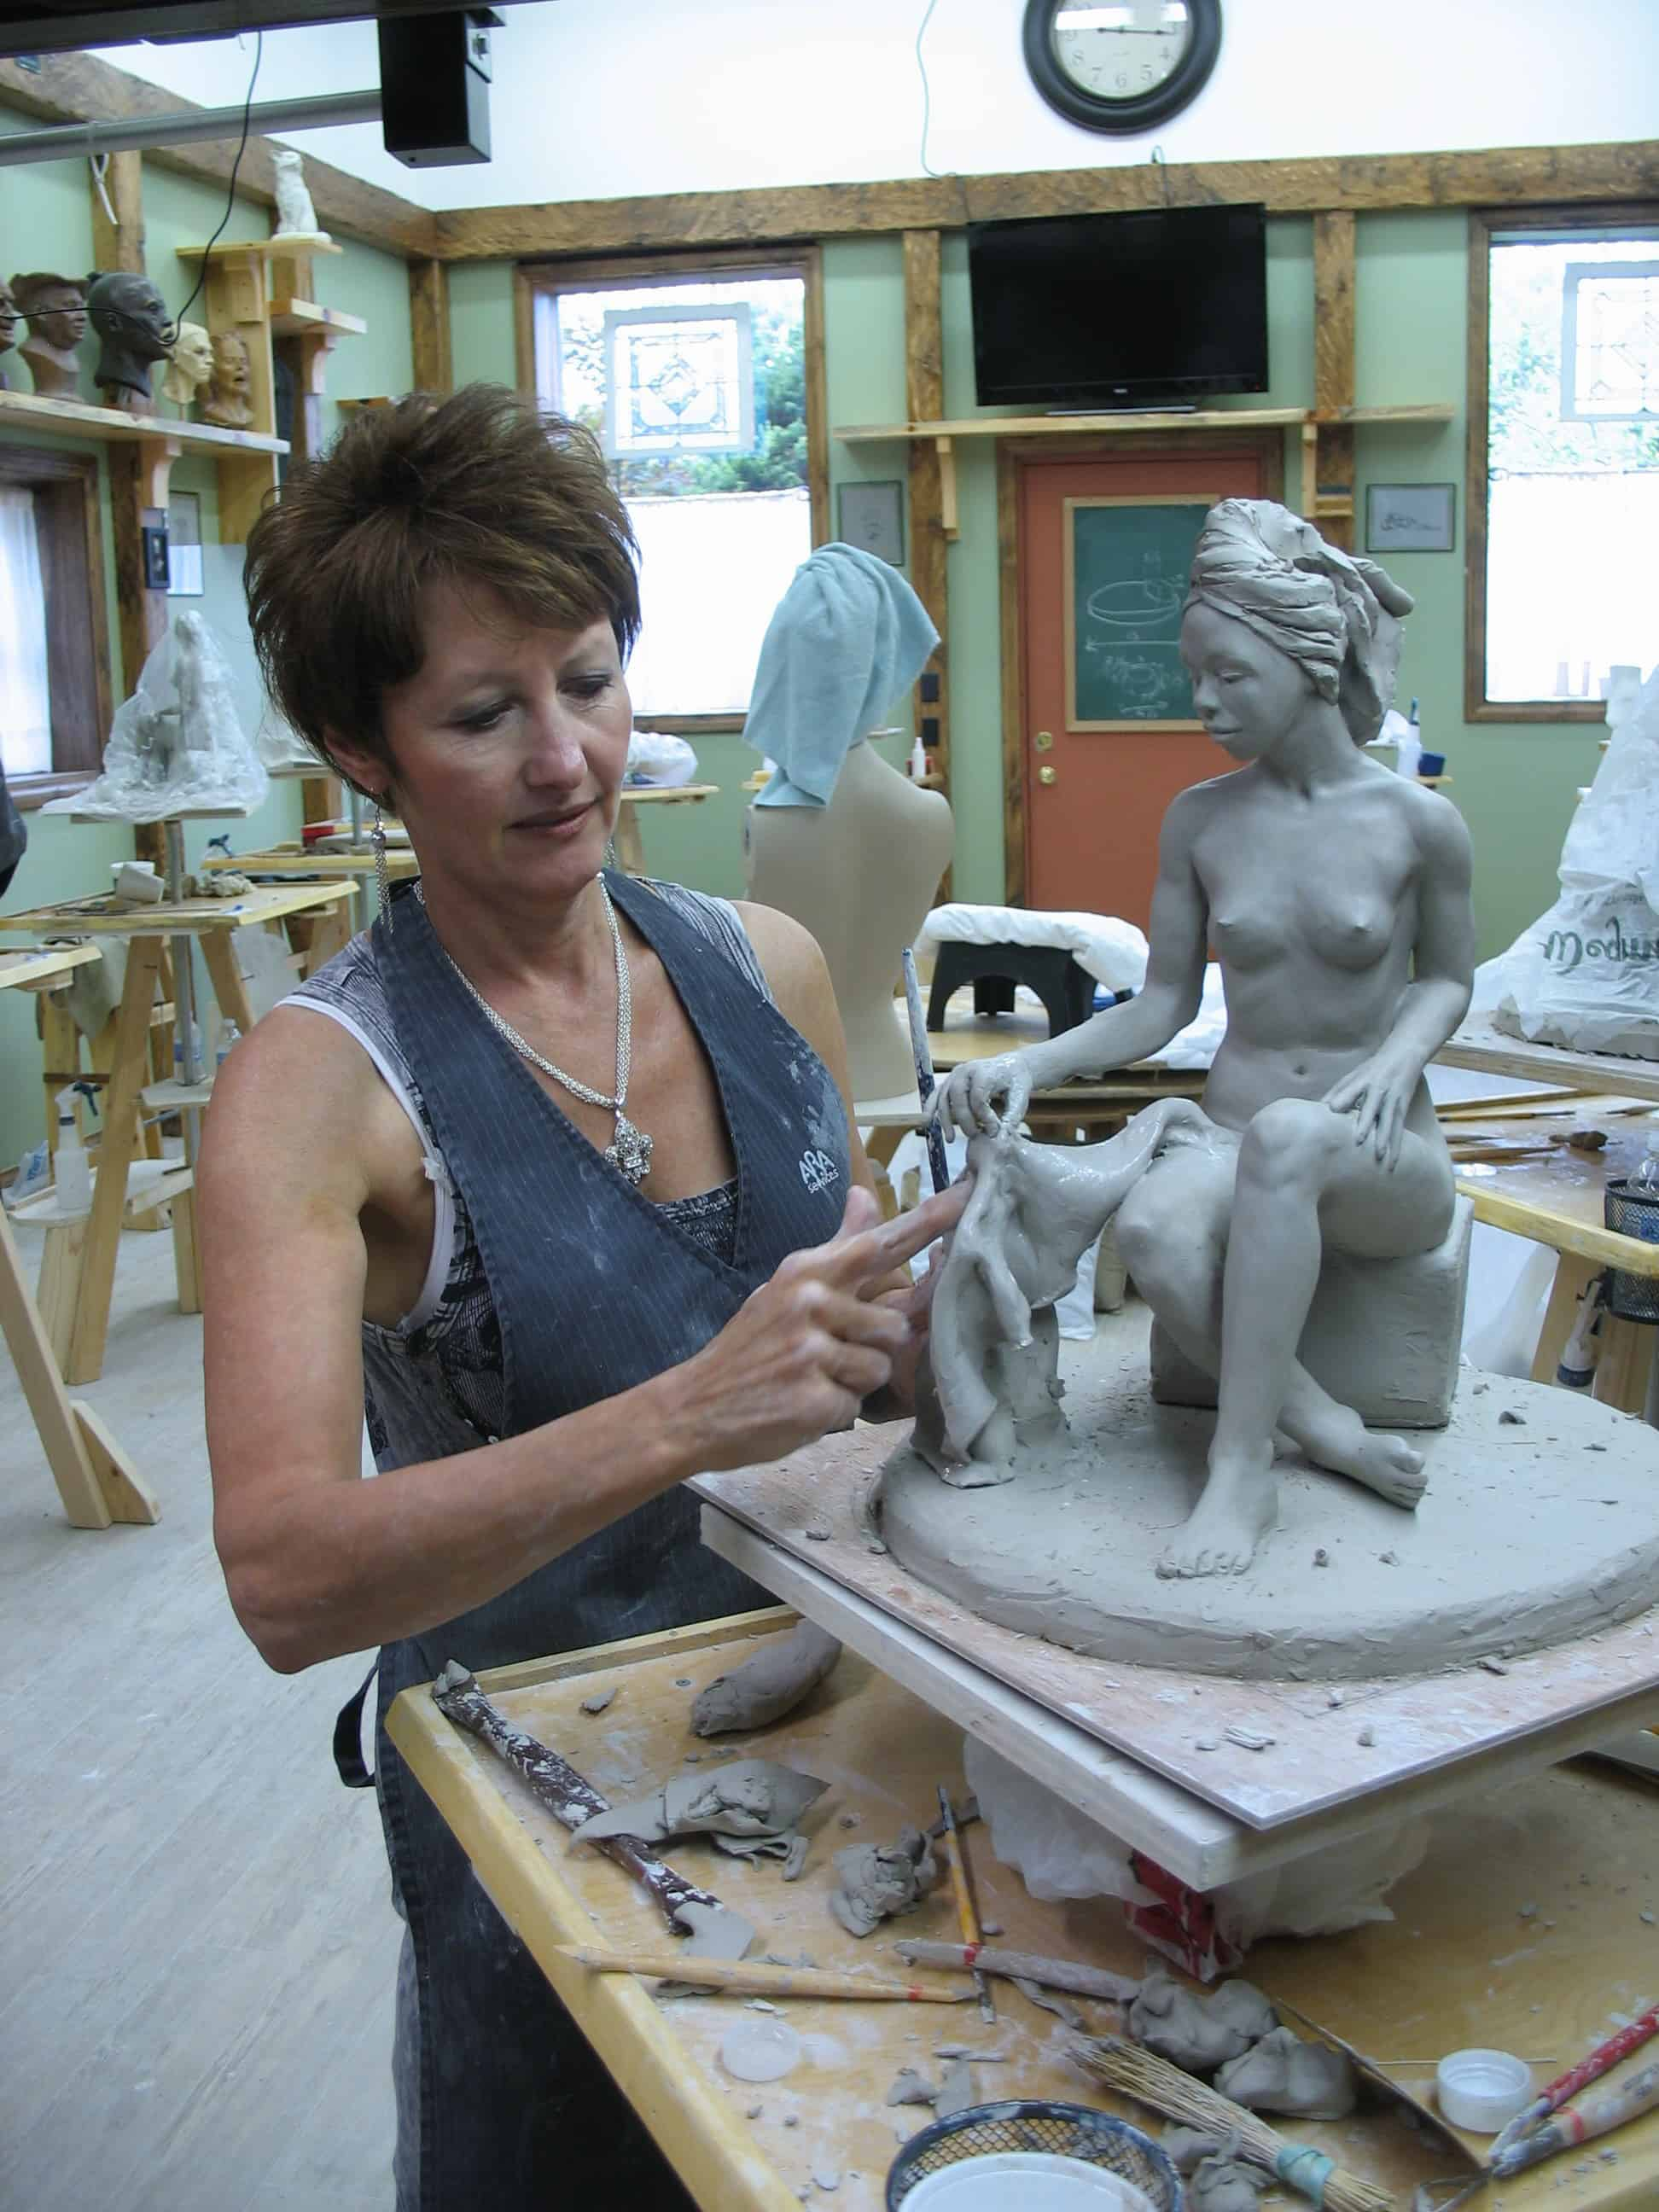 Artist Terri Meyer, Sculpting